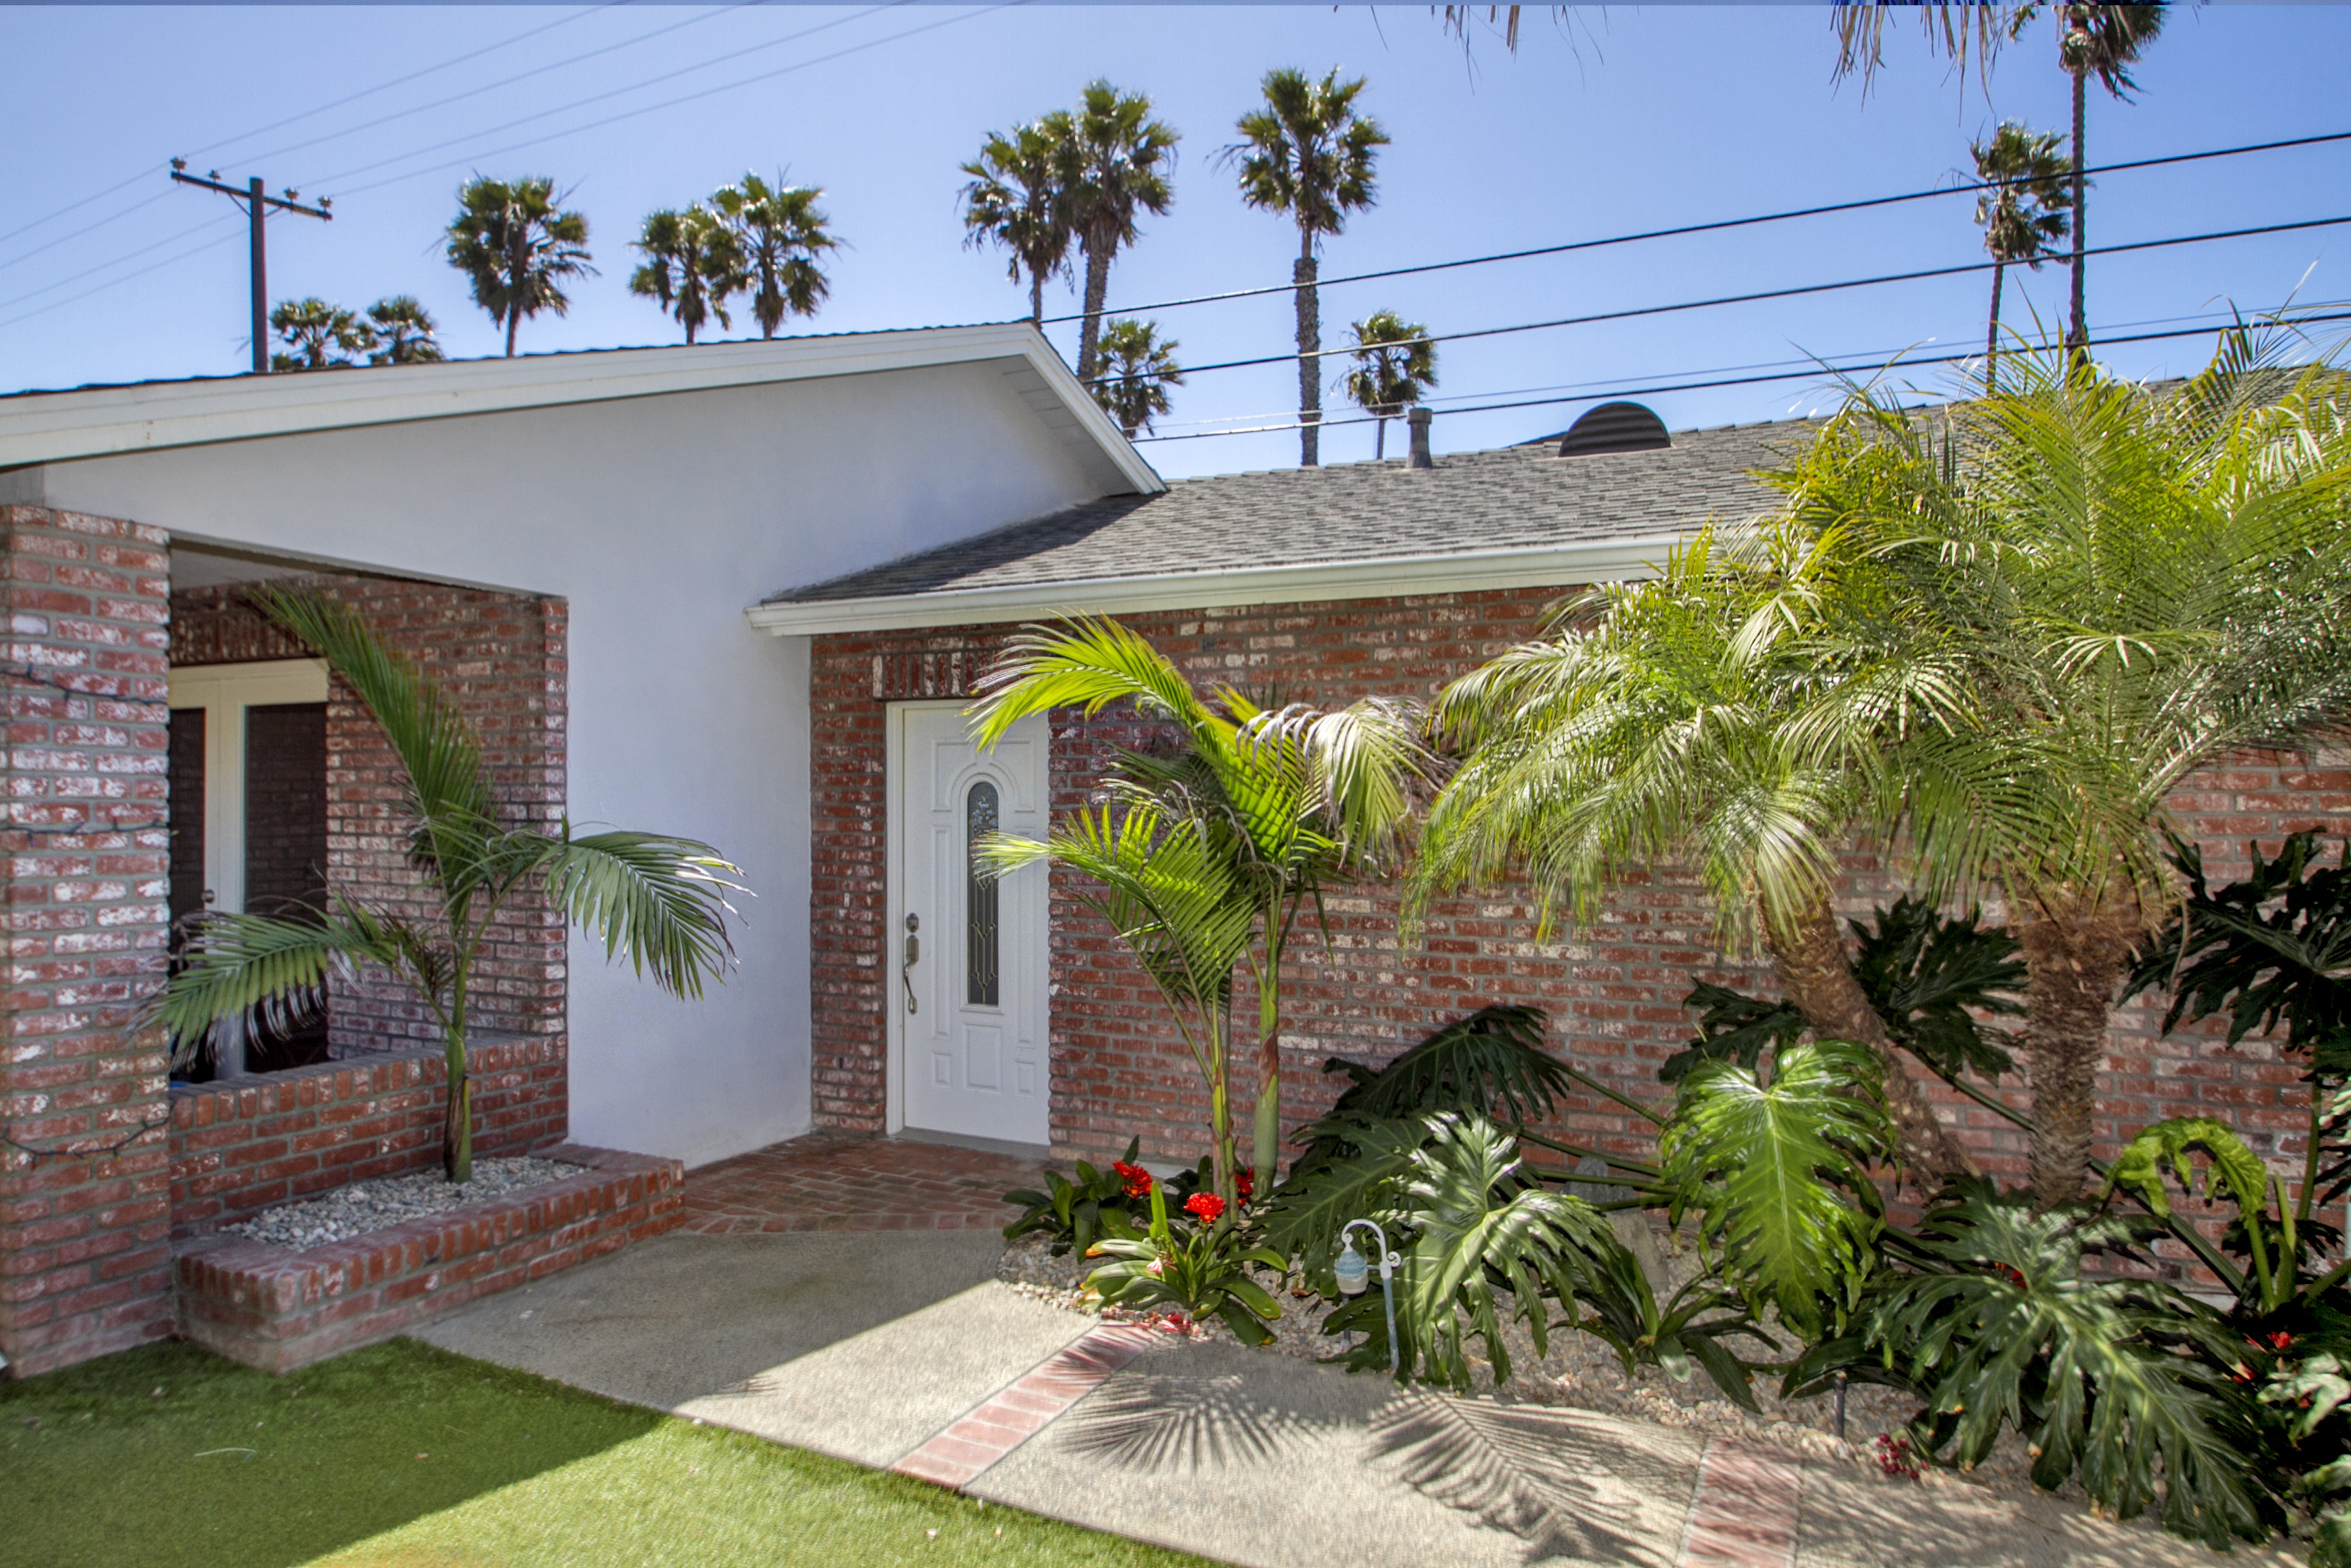 Sold 2013 -  Del Mar, CA 92014